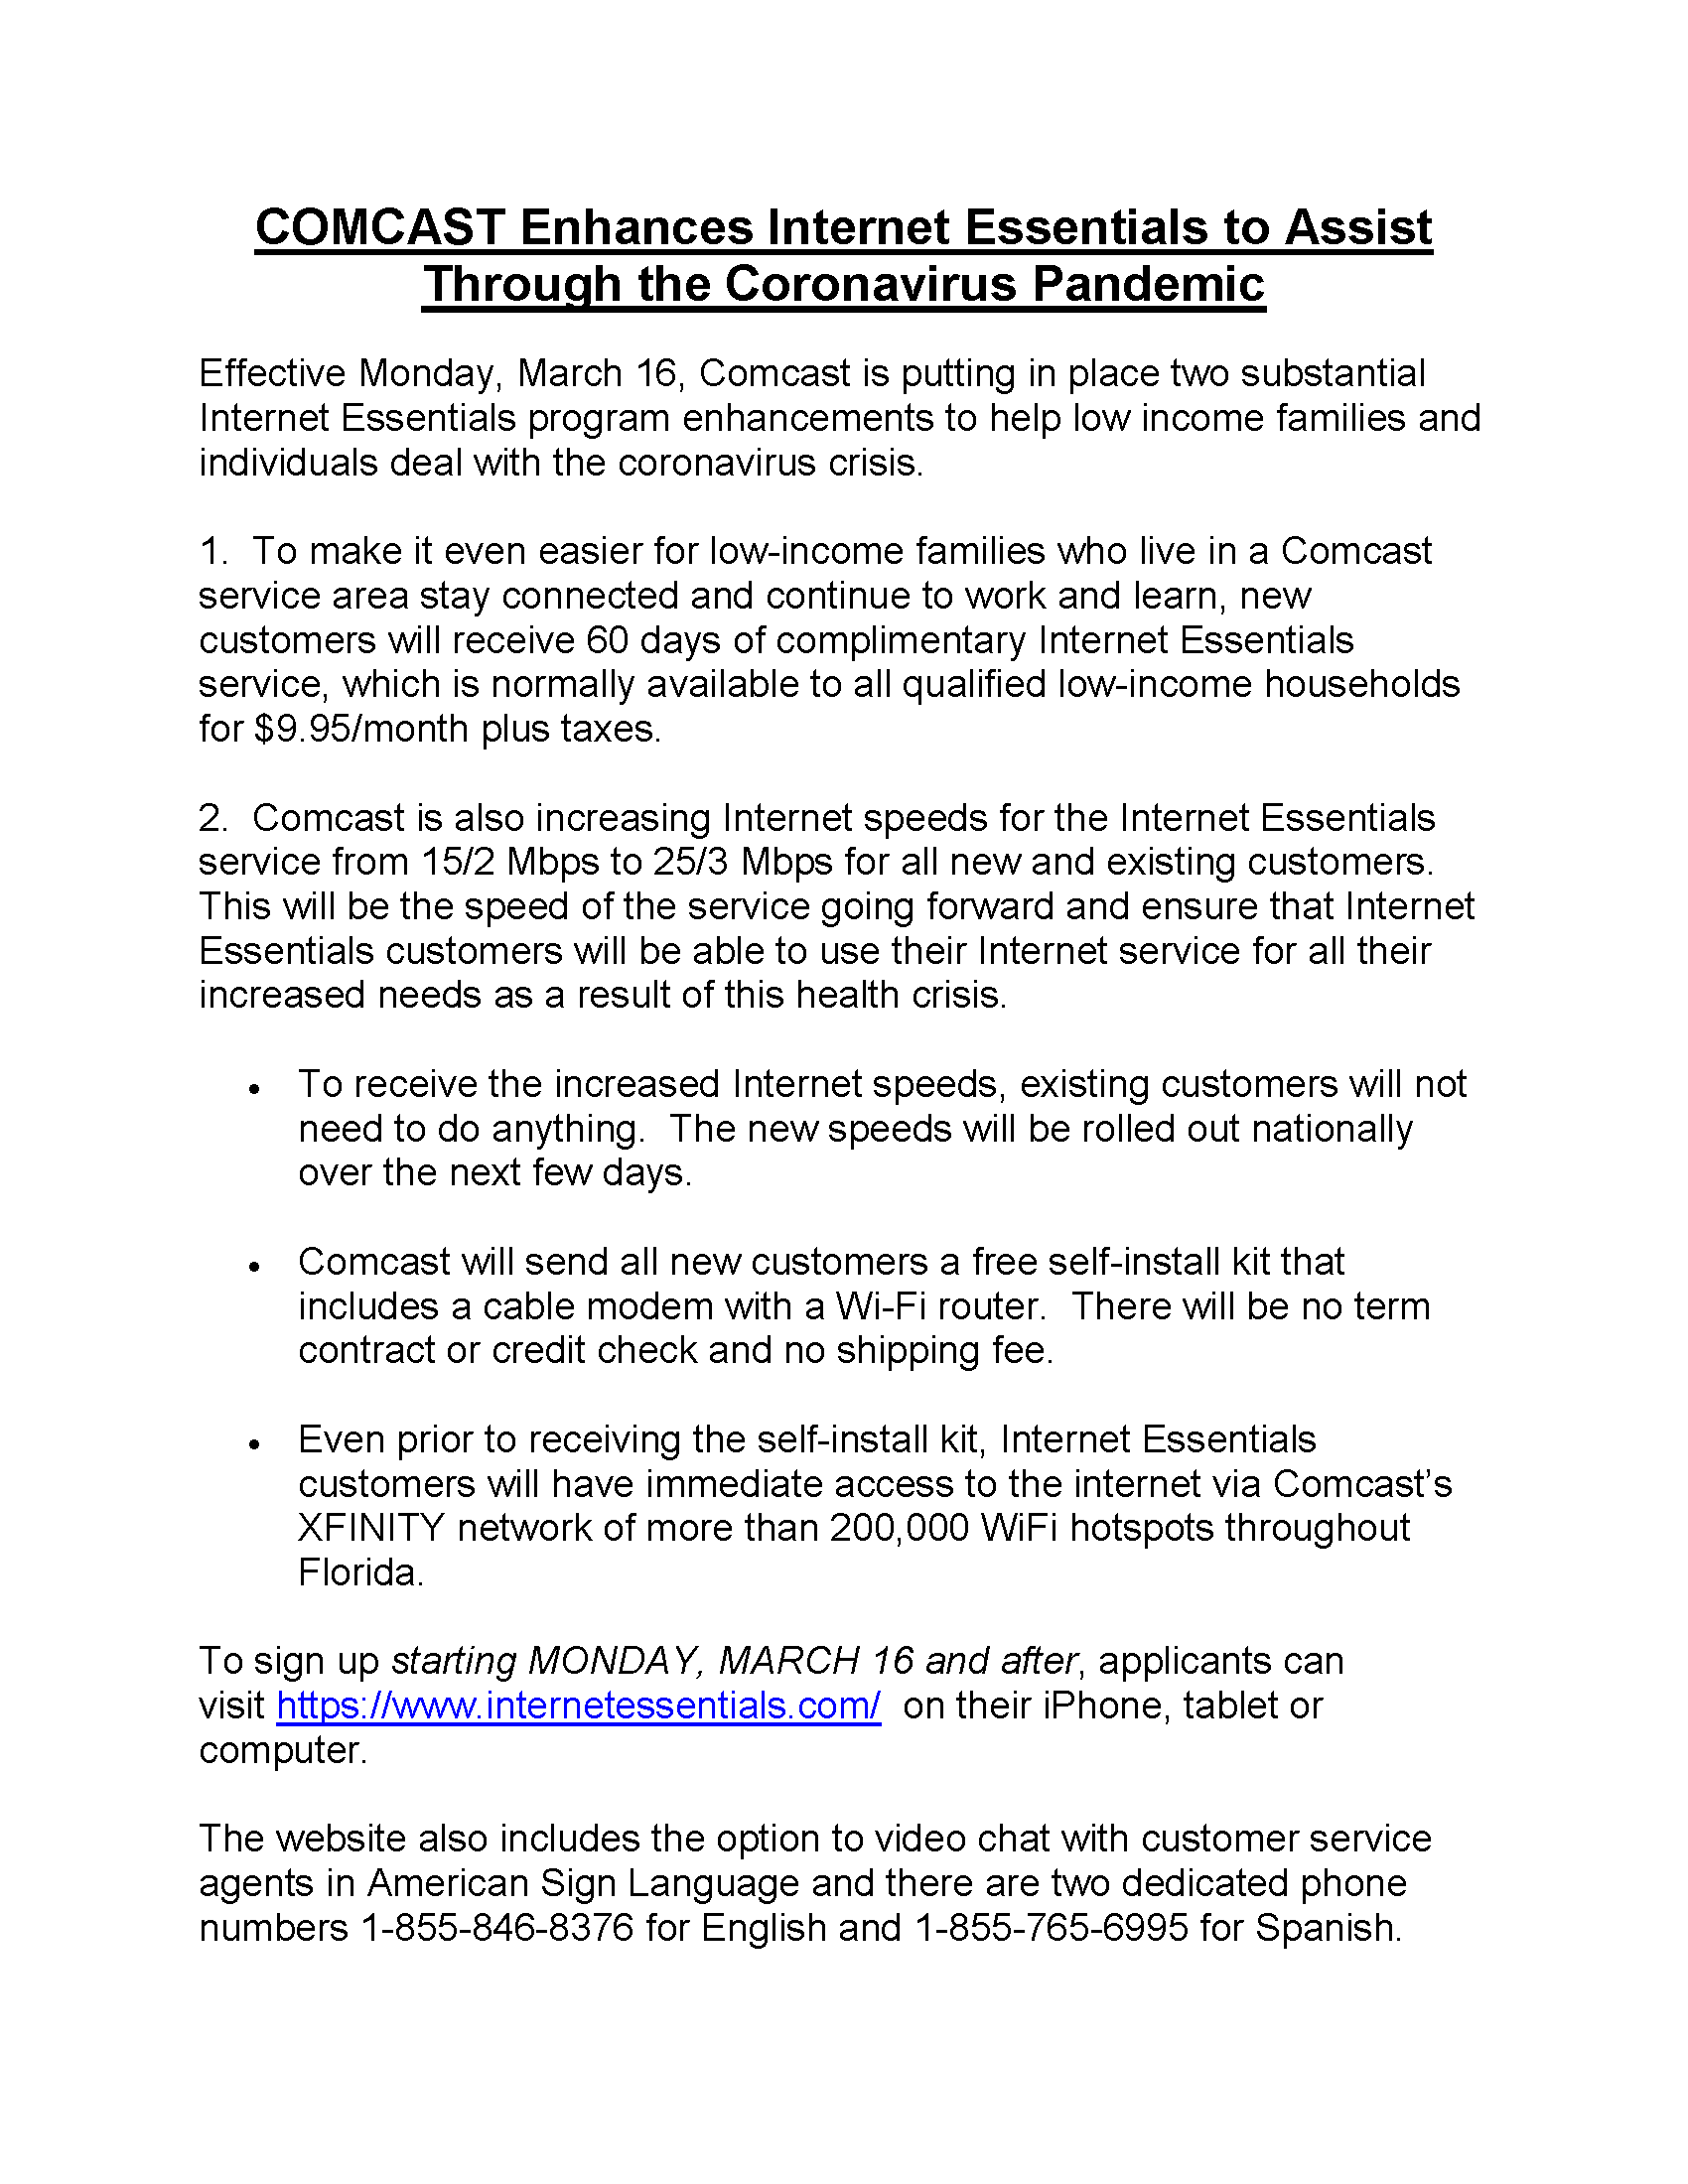 COMCAST Enhances Internet Essentials to Assist Through the Coronavirus Pandemic LETTER